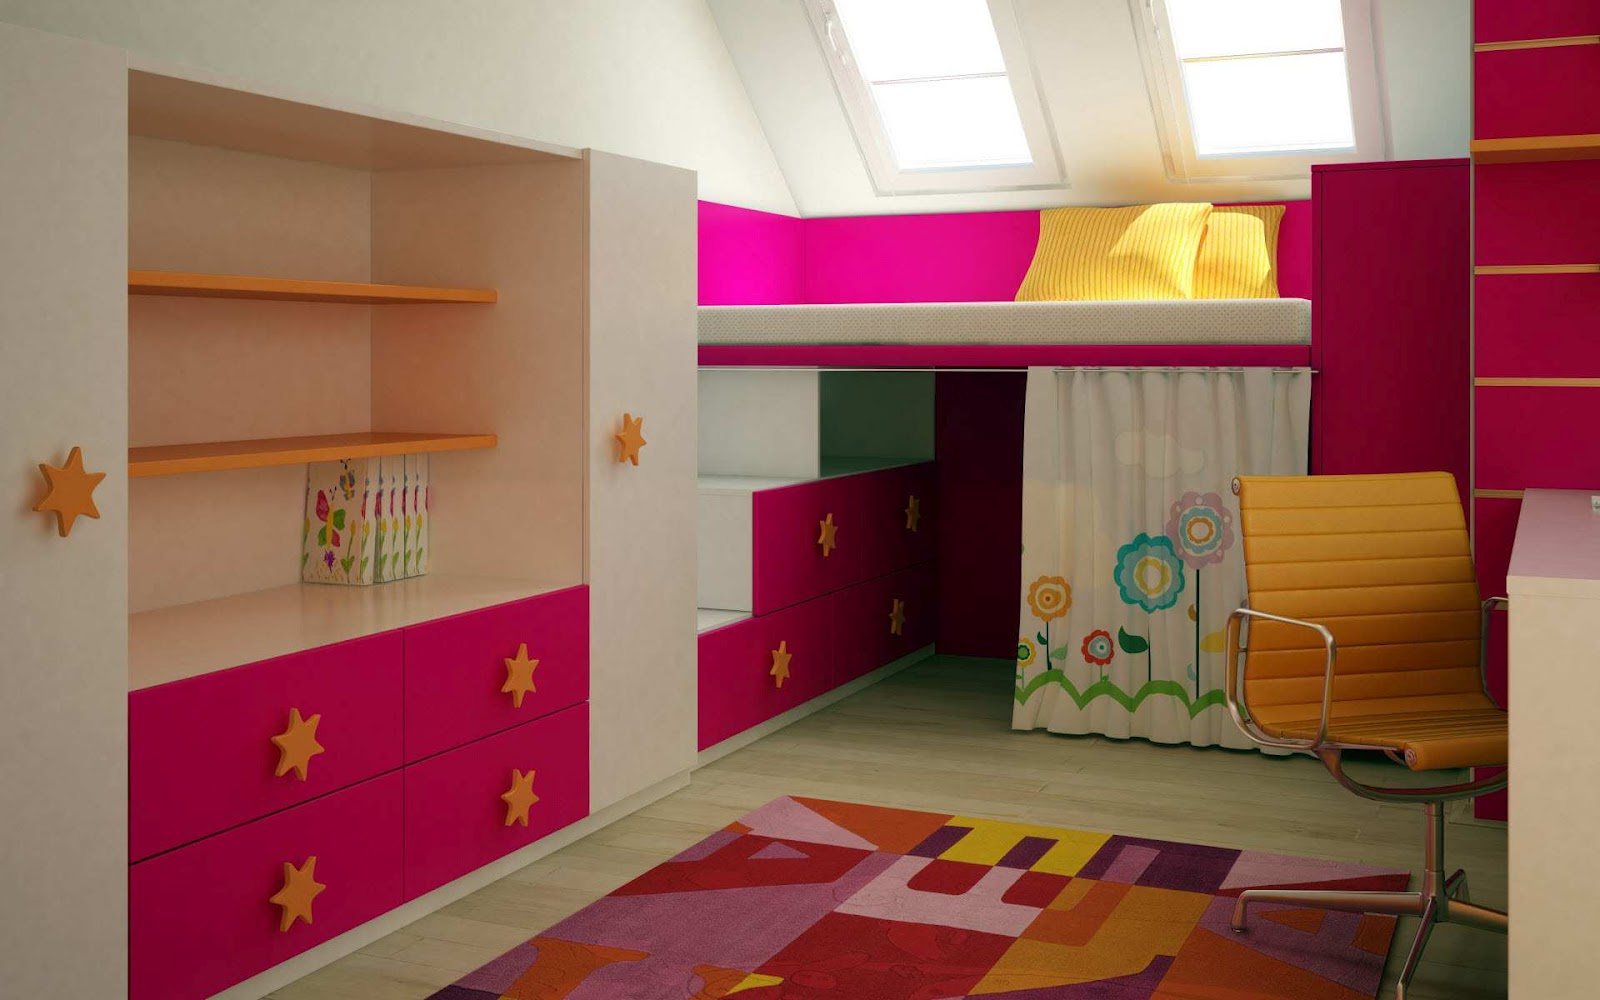 About Kids Bedroom Wallpaper Ideas For Kids Room With Pink And Purple 1600x1000